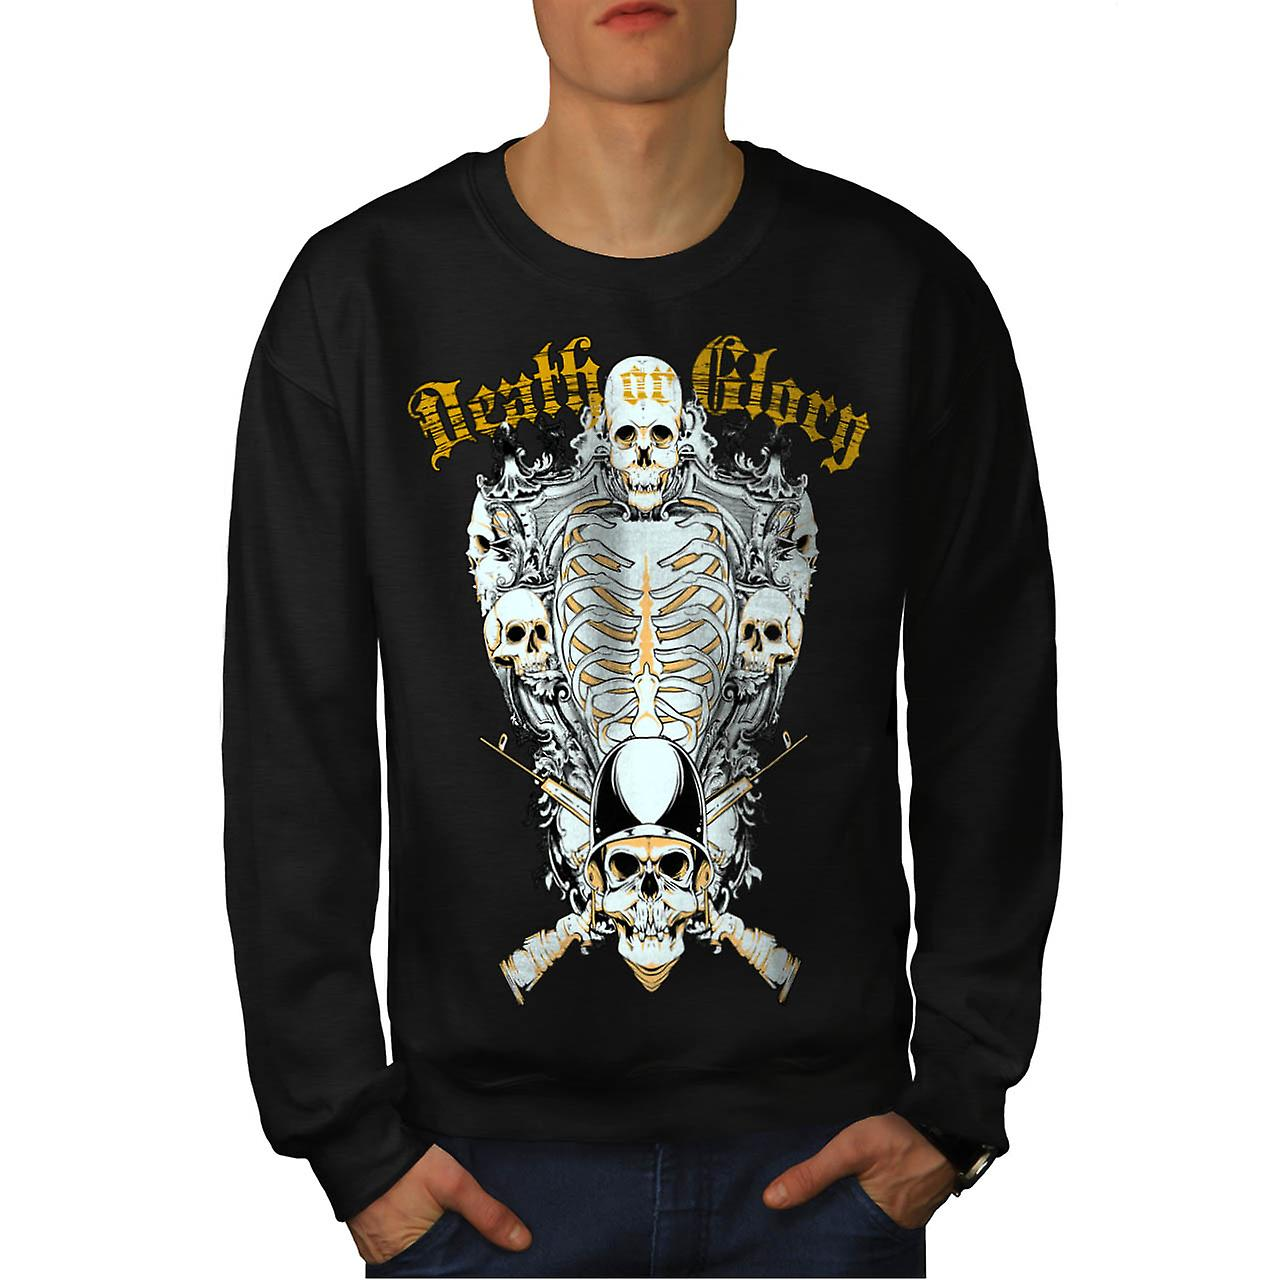 Death Glory Grave Gun Skull Army Men Black Sweatshirt | Wellcoda